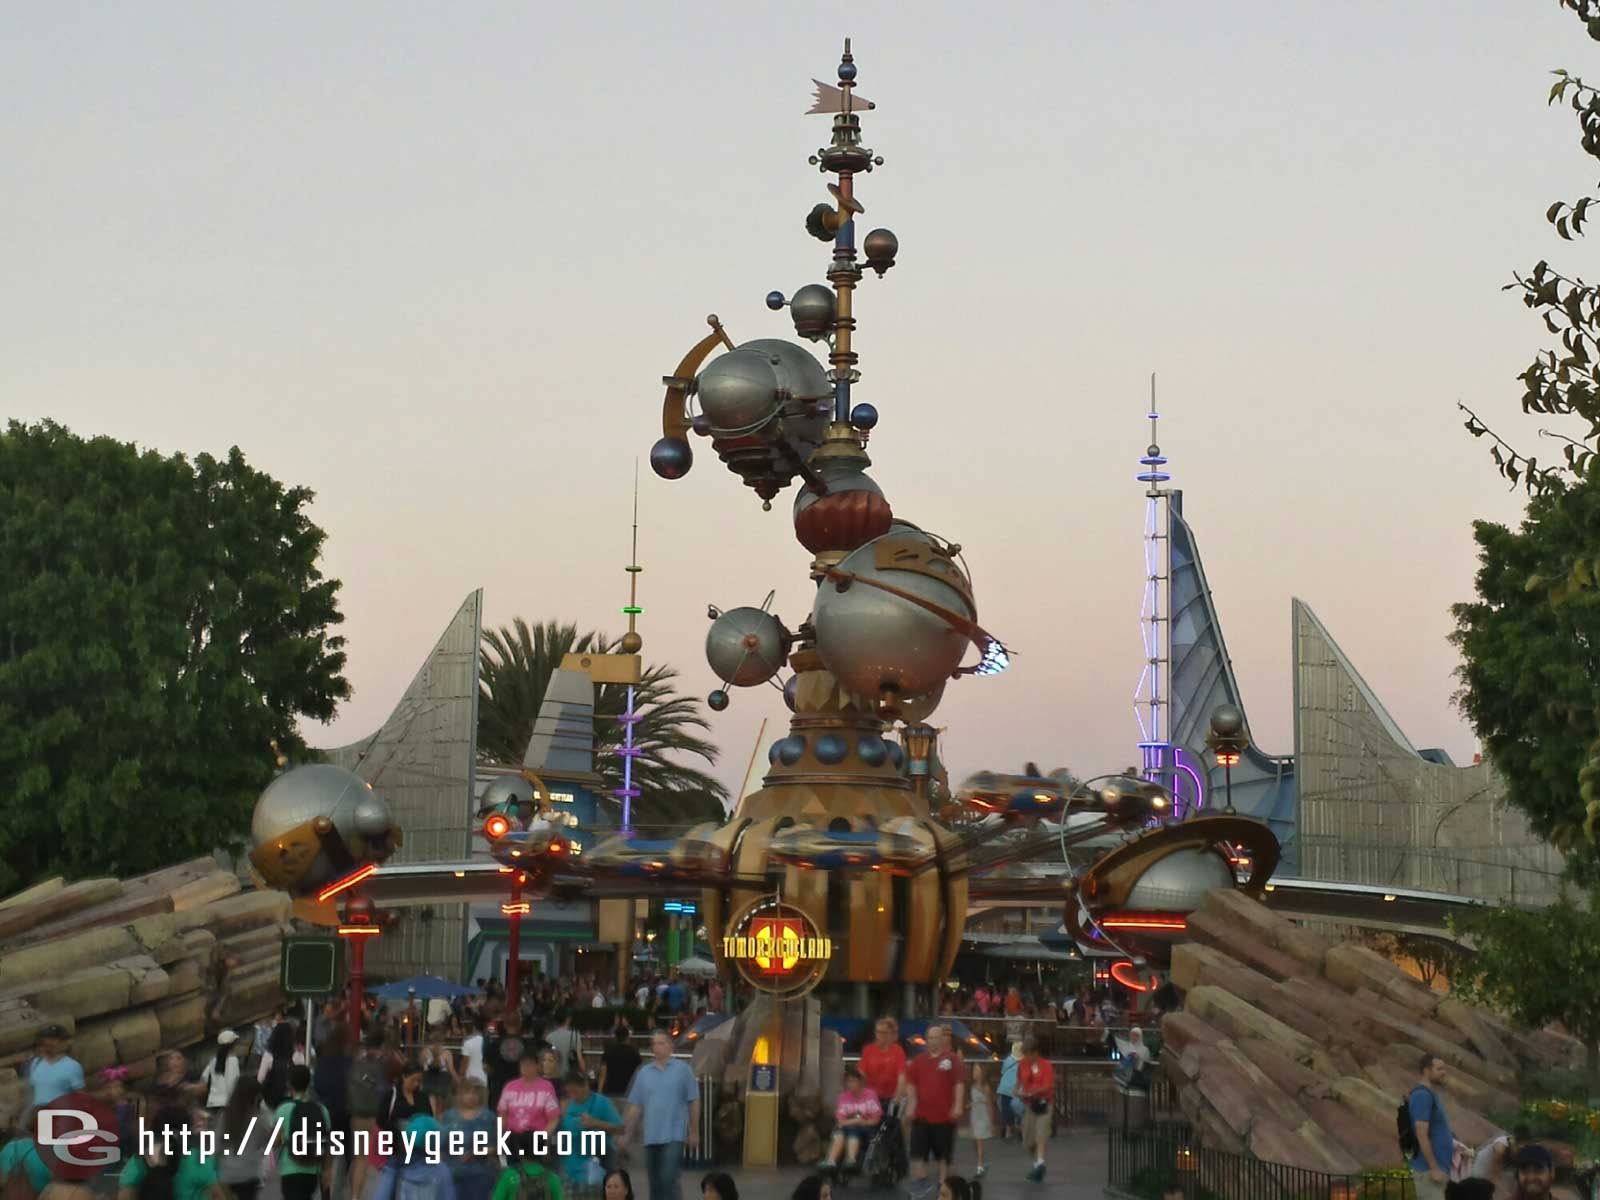 Tomorrowland Entrance / Astro Orbitor #Disneyland